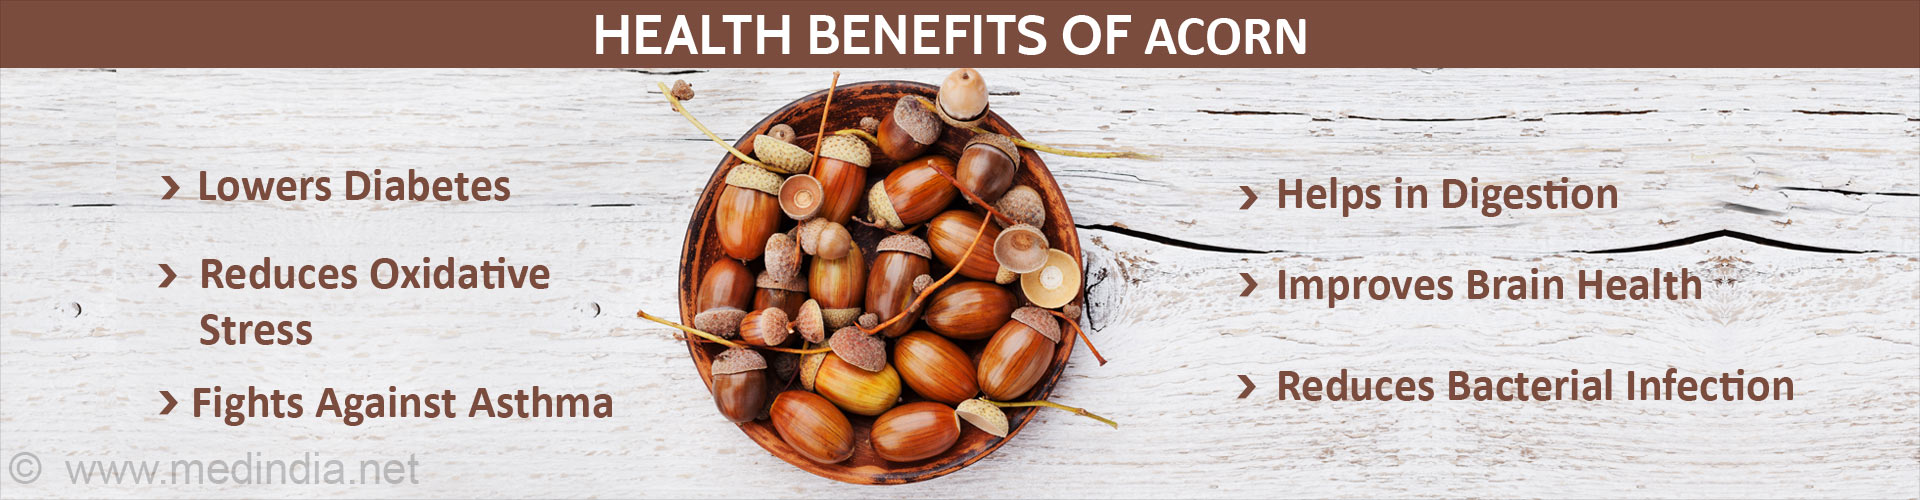 Health benefits of acorn - Lowers diabetes - Reduces oxidative stress - Helps in digestion - Improves brain health - Reduces bacterial infection